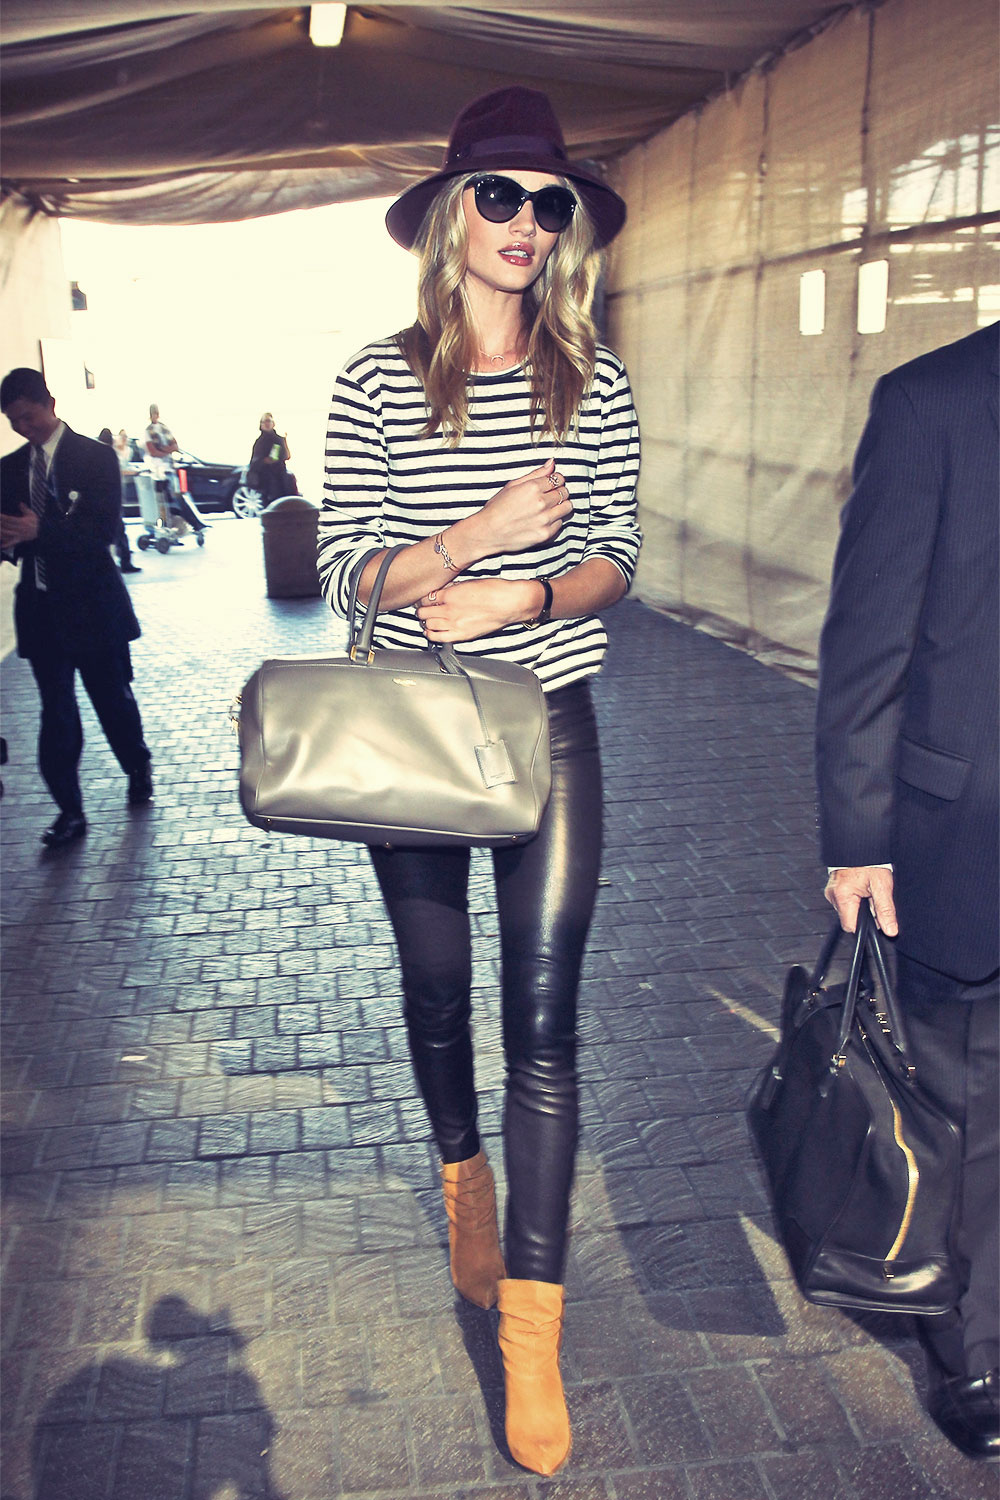 Rosie Huntington-Whiteley arriving at LAX Airport on her way to London